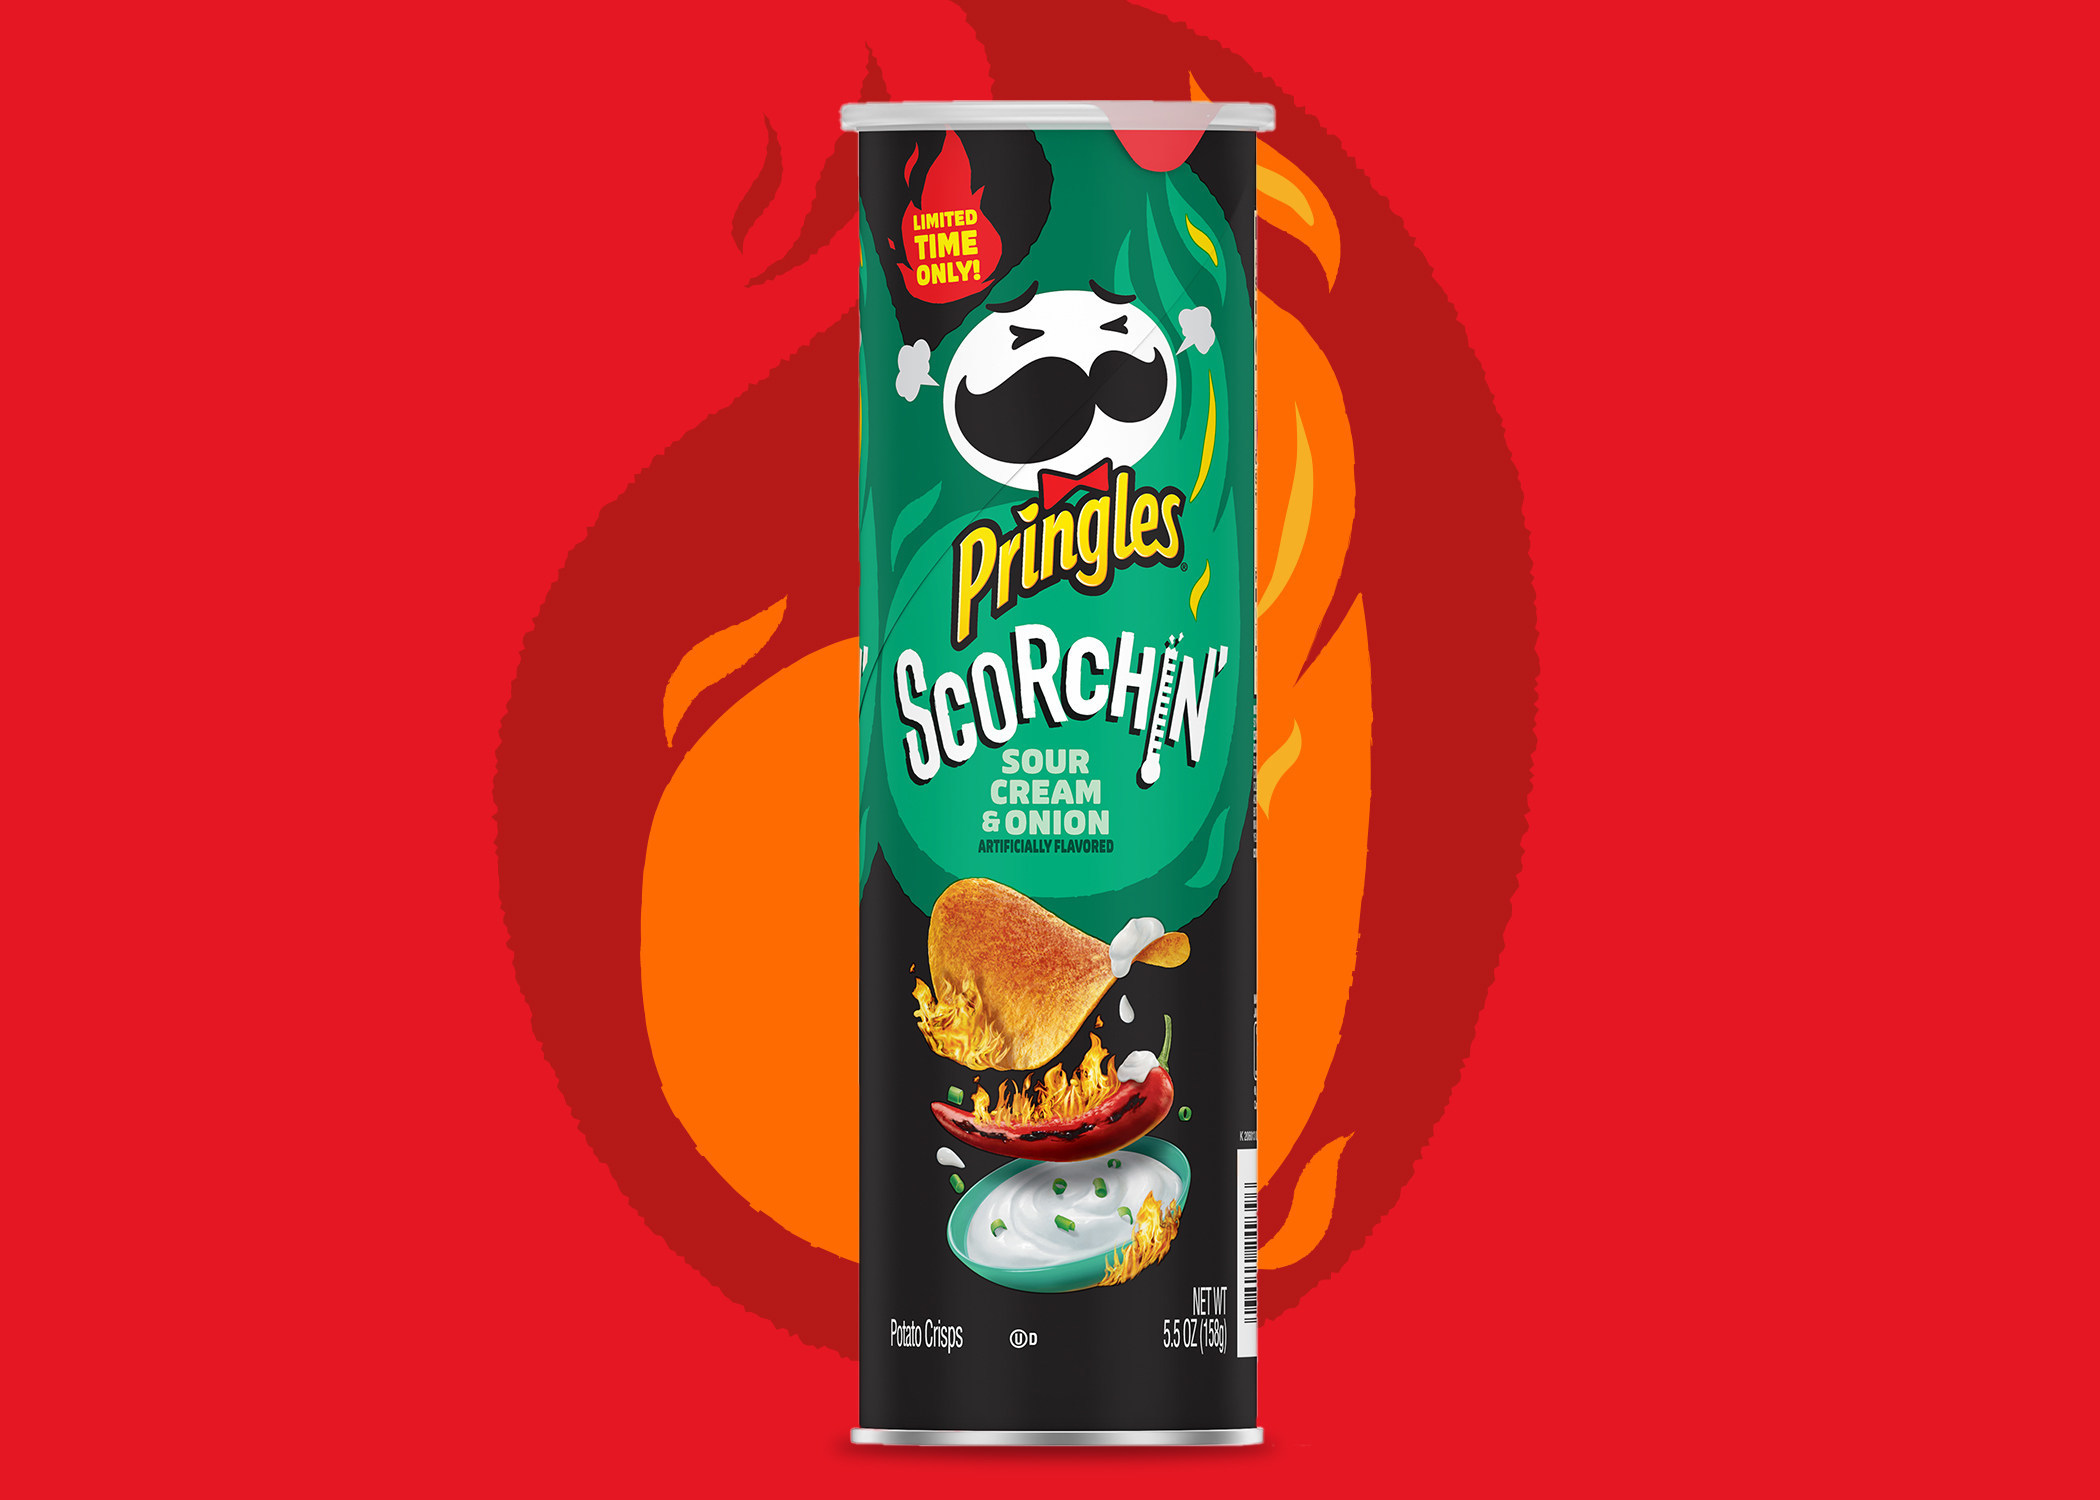 New Pringles® Scorchin' Sour Cream & Onion Satisfies Snackers' Tangy Temptations With A Kick   PR Newswire